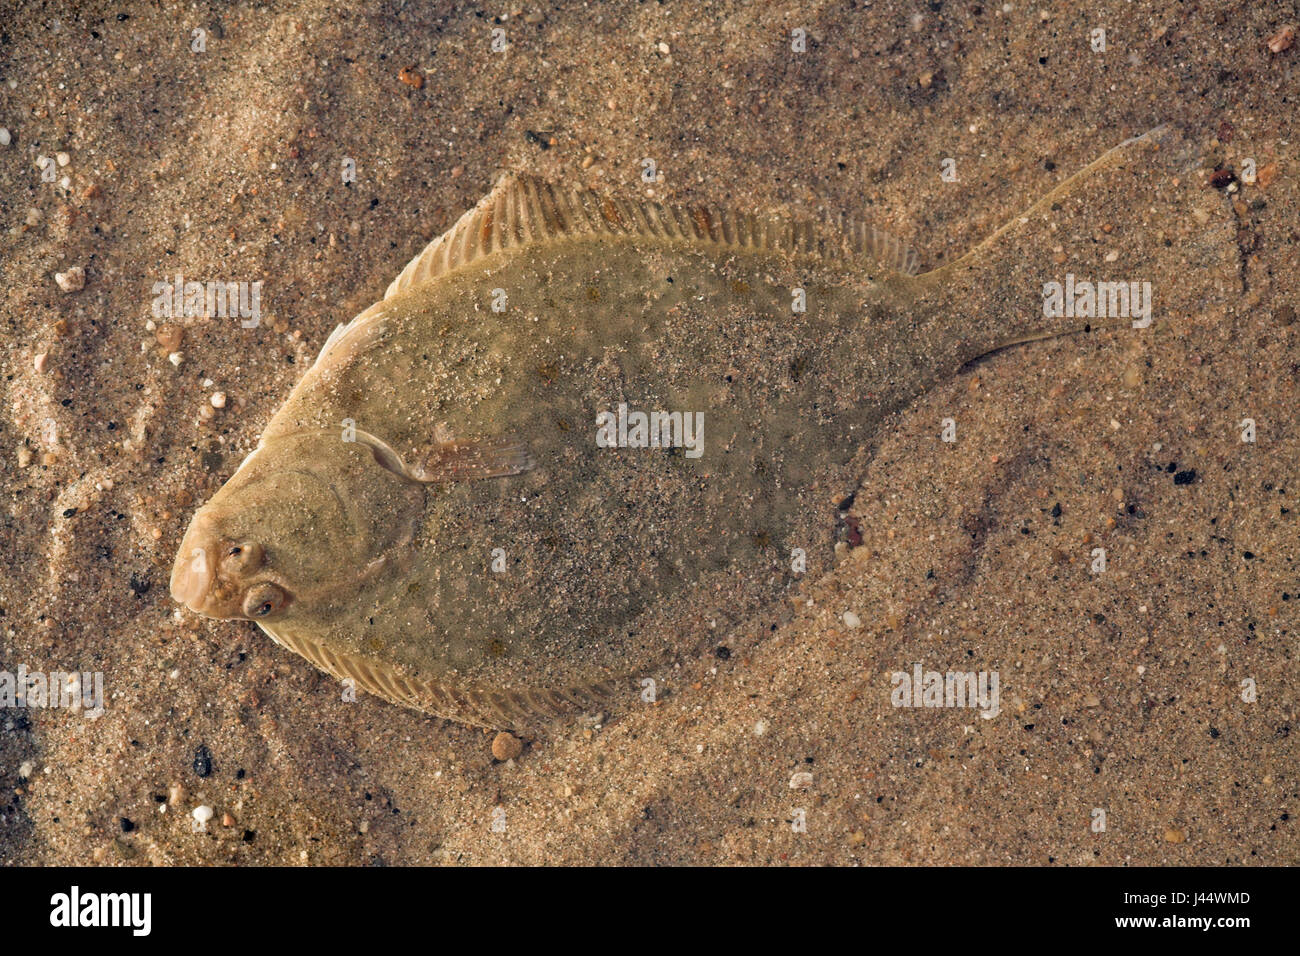 flounder photographed from above - Stock Image